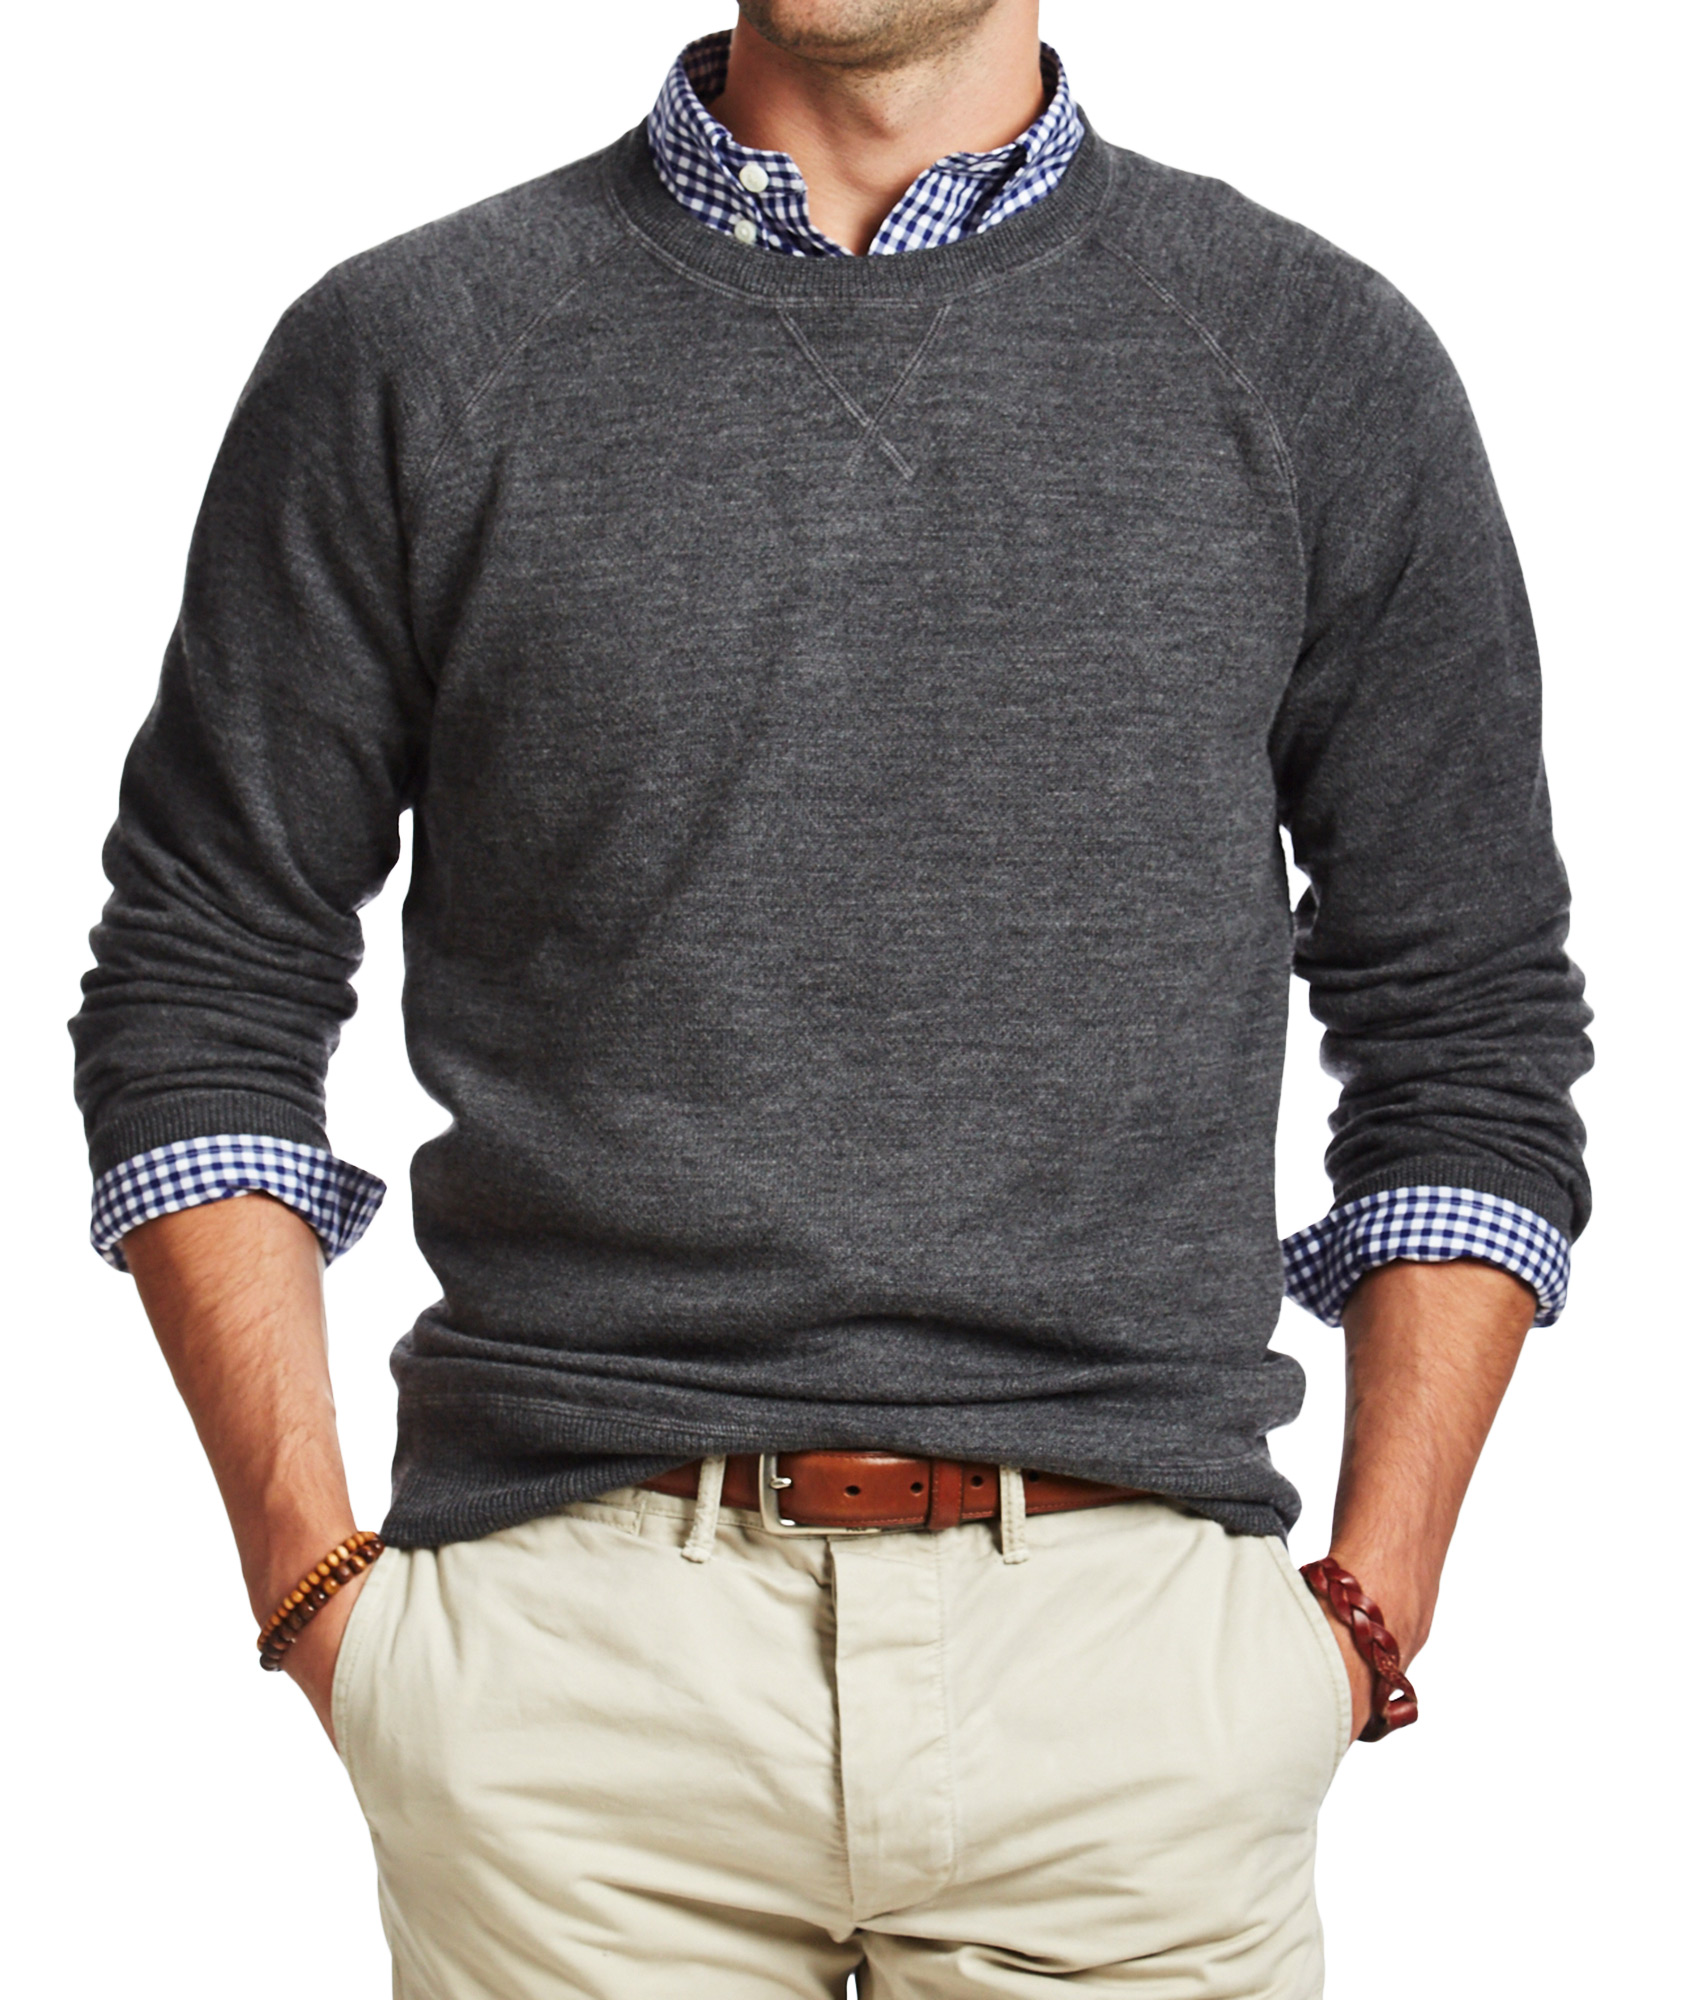 Sweater Over Button Shirt How To Roll Up Sleeves Styleforum